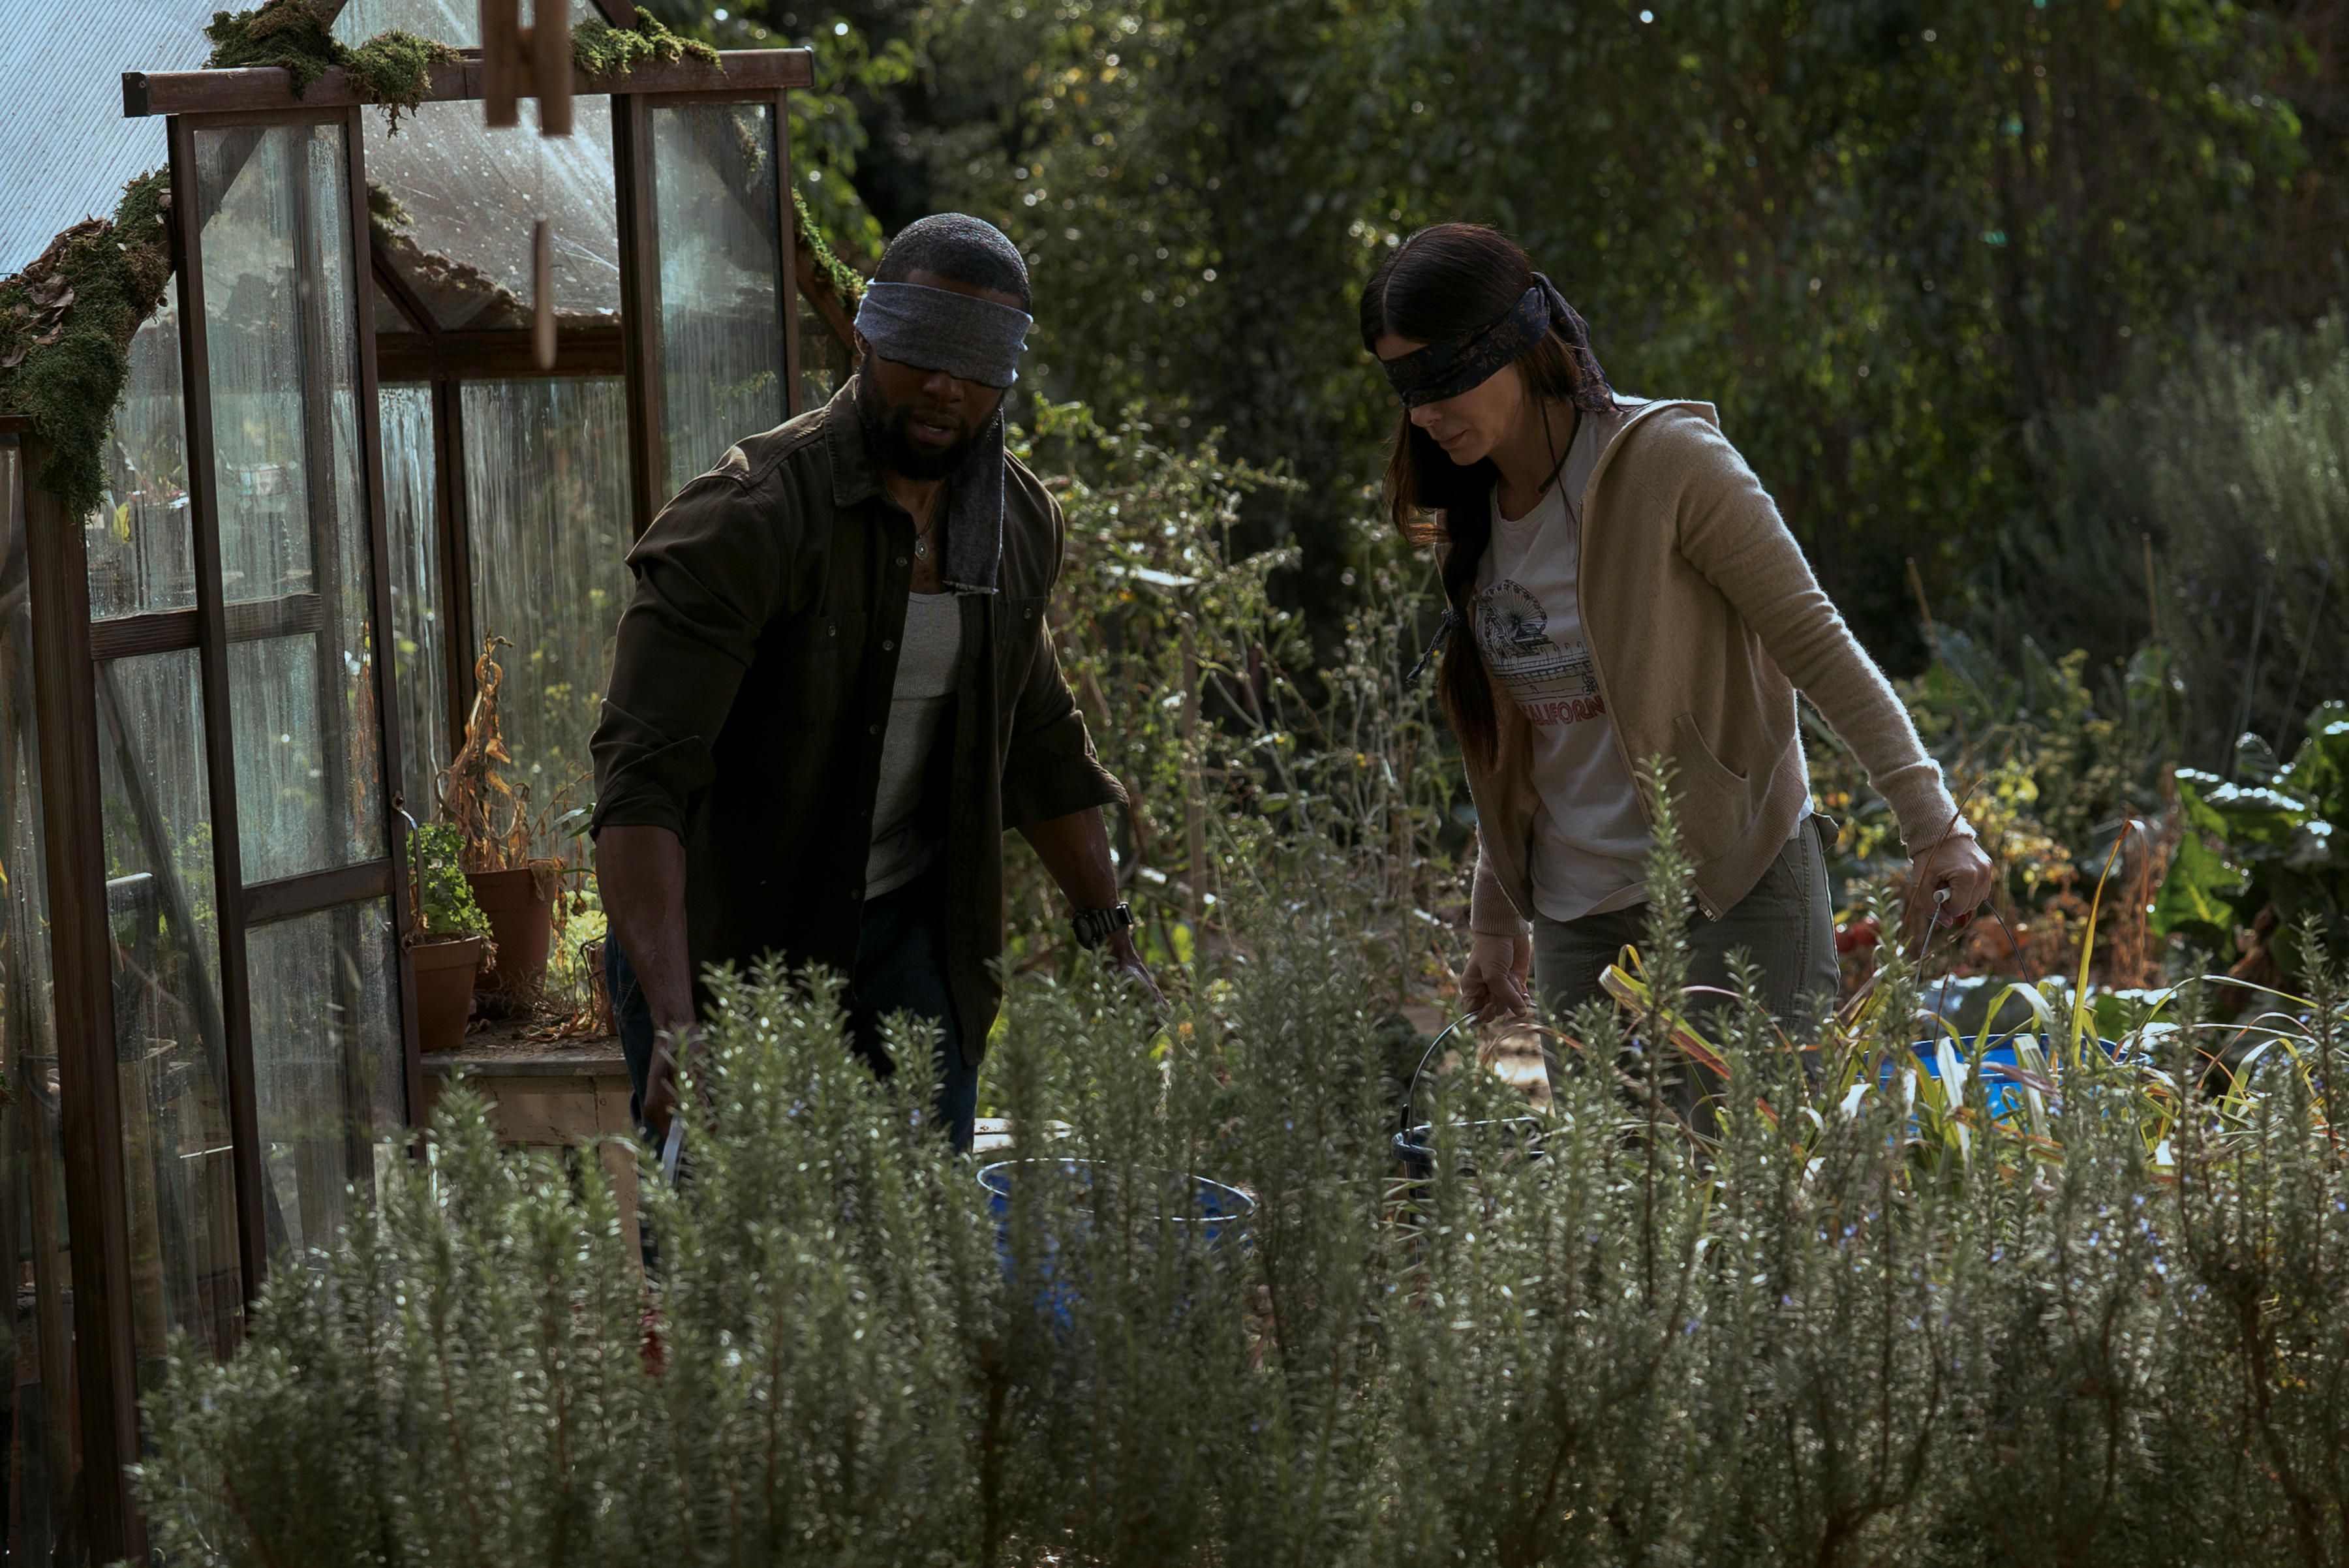 Actors in Bird Box wear blindfolds as they carry buckets in a garden